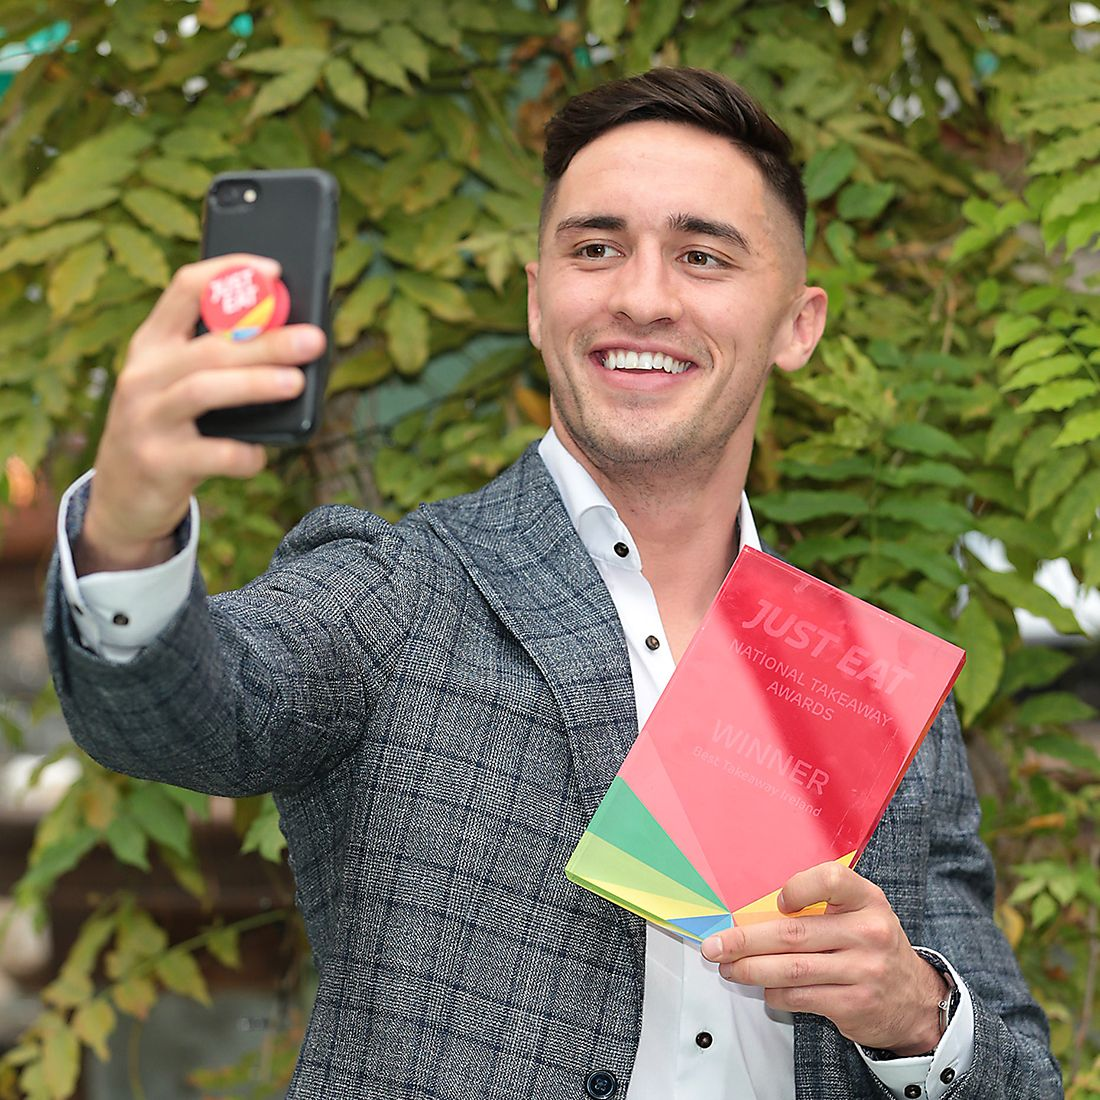 Love Island's Greg O'Shea with a Just Eat National Takeaway Awards plaque.